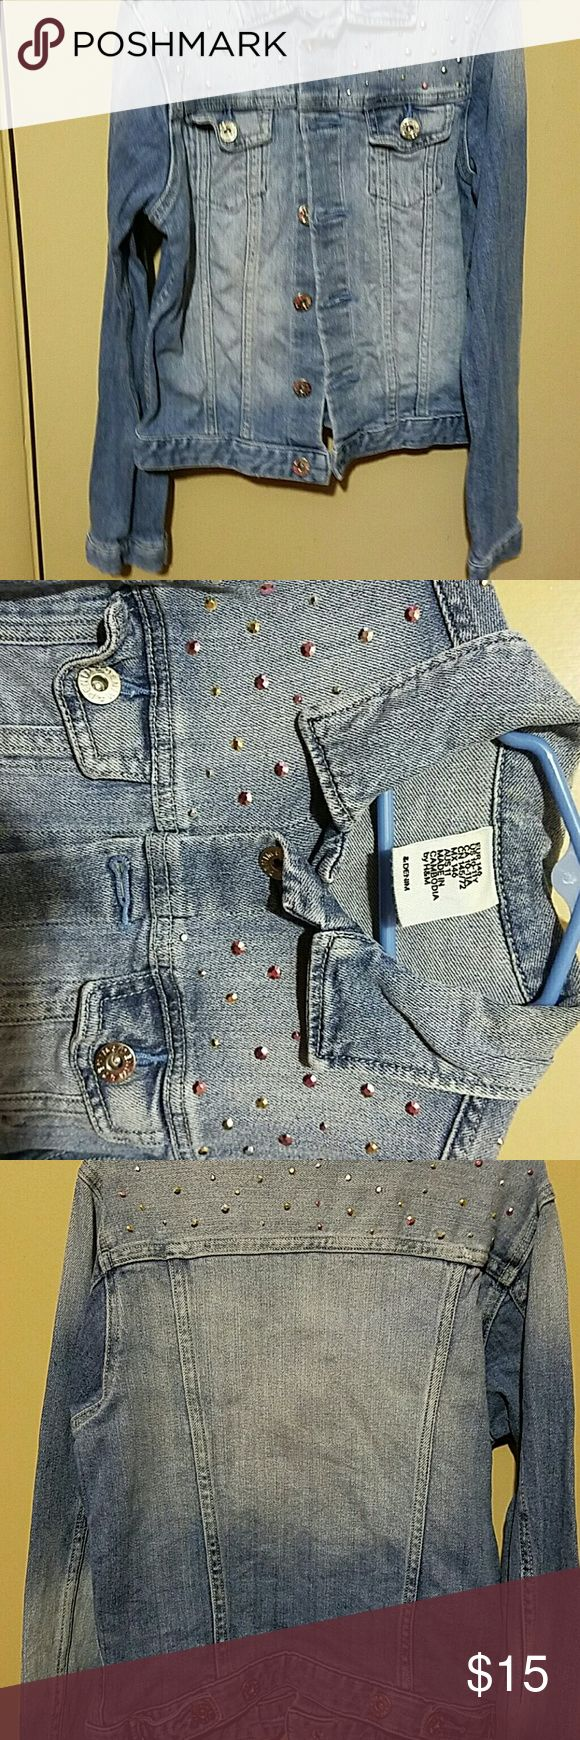 Girls denim jacket H&M size 10-11 Cute light wash denim jacket with pink and silver studs! H&M Jackets & Coats Jean Jackets